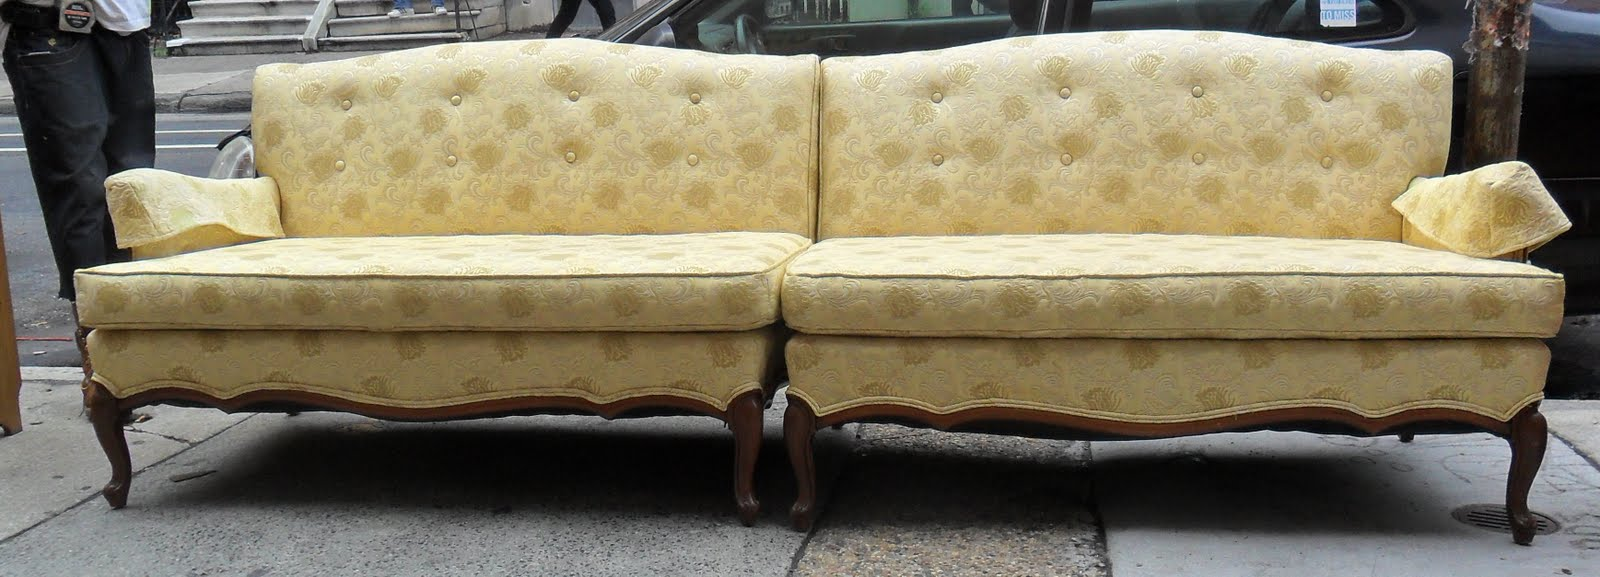 Beautiful French Provincial Sectional Sofa Sold